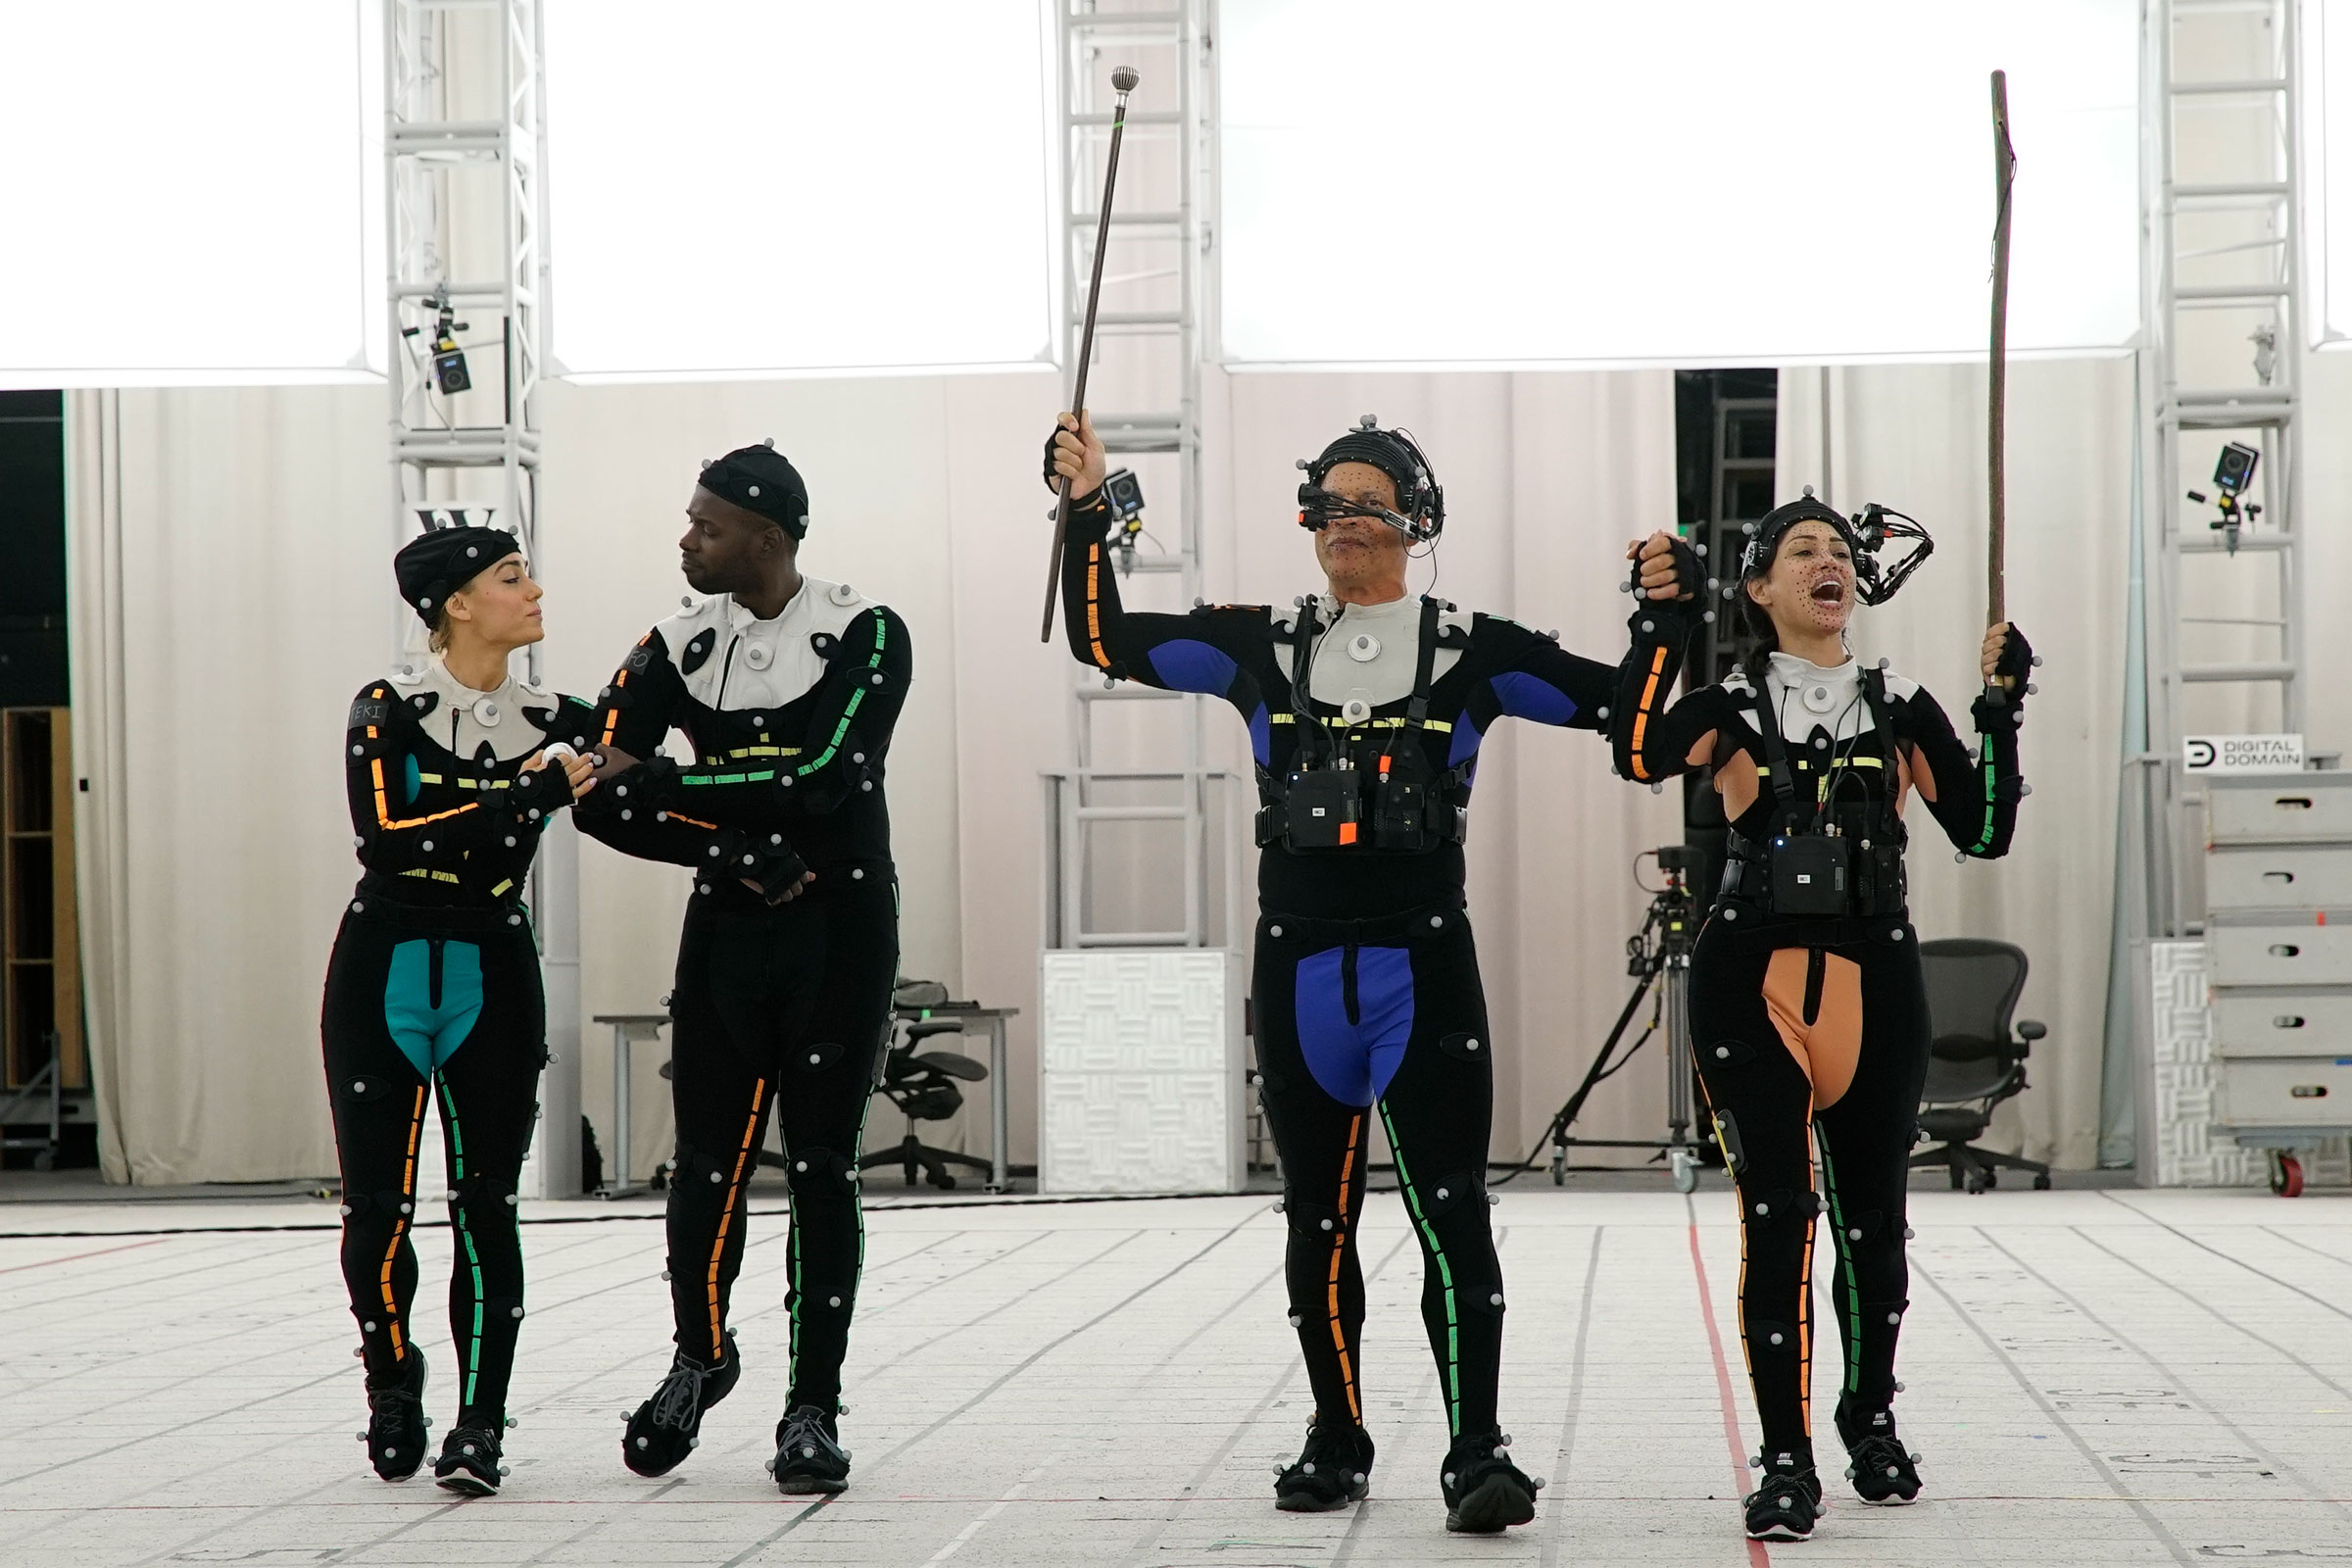 Motion capture actors perform for the virtual-reality experience The March on a soundstage at the Digital Domain studios in Los Angeles.